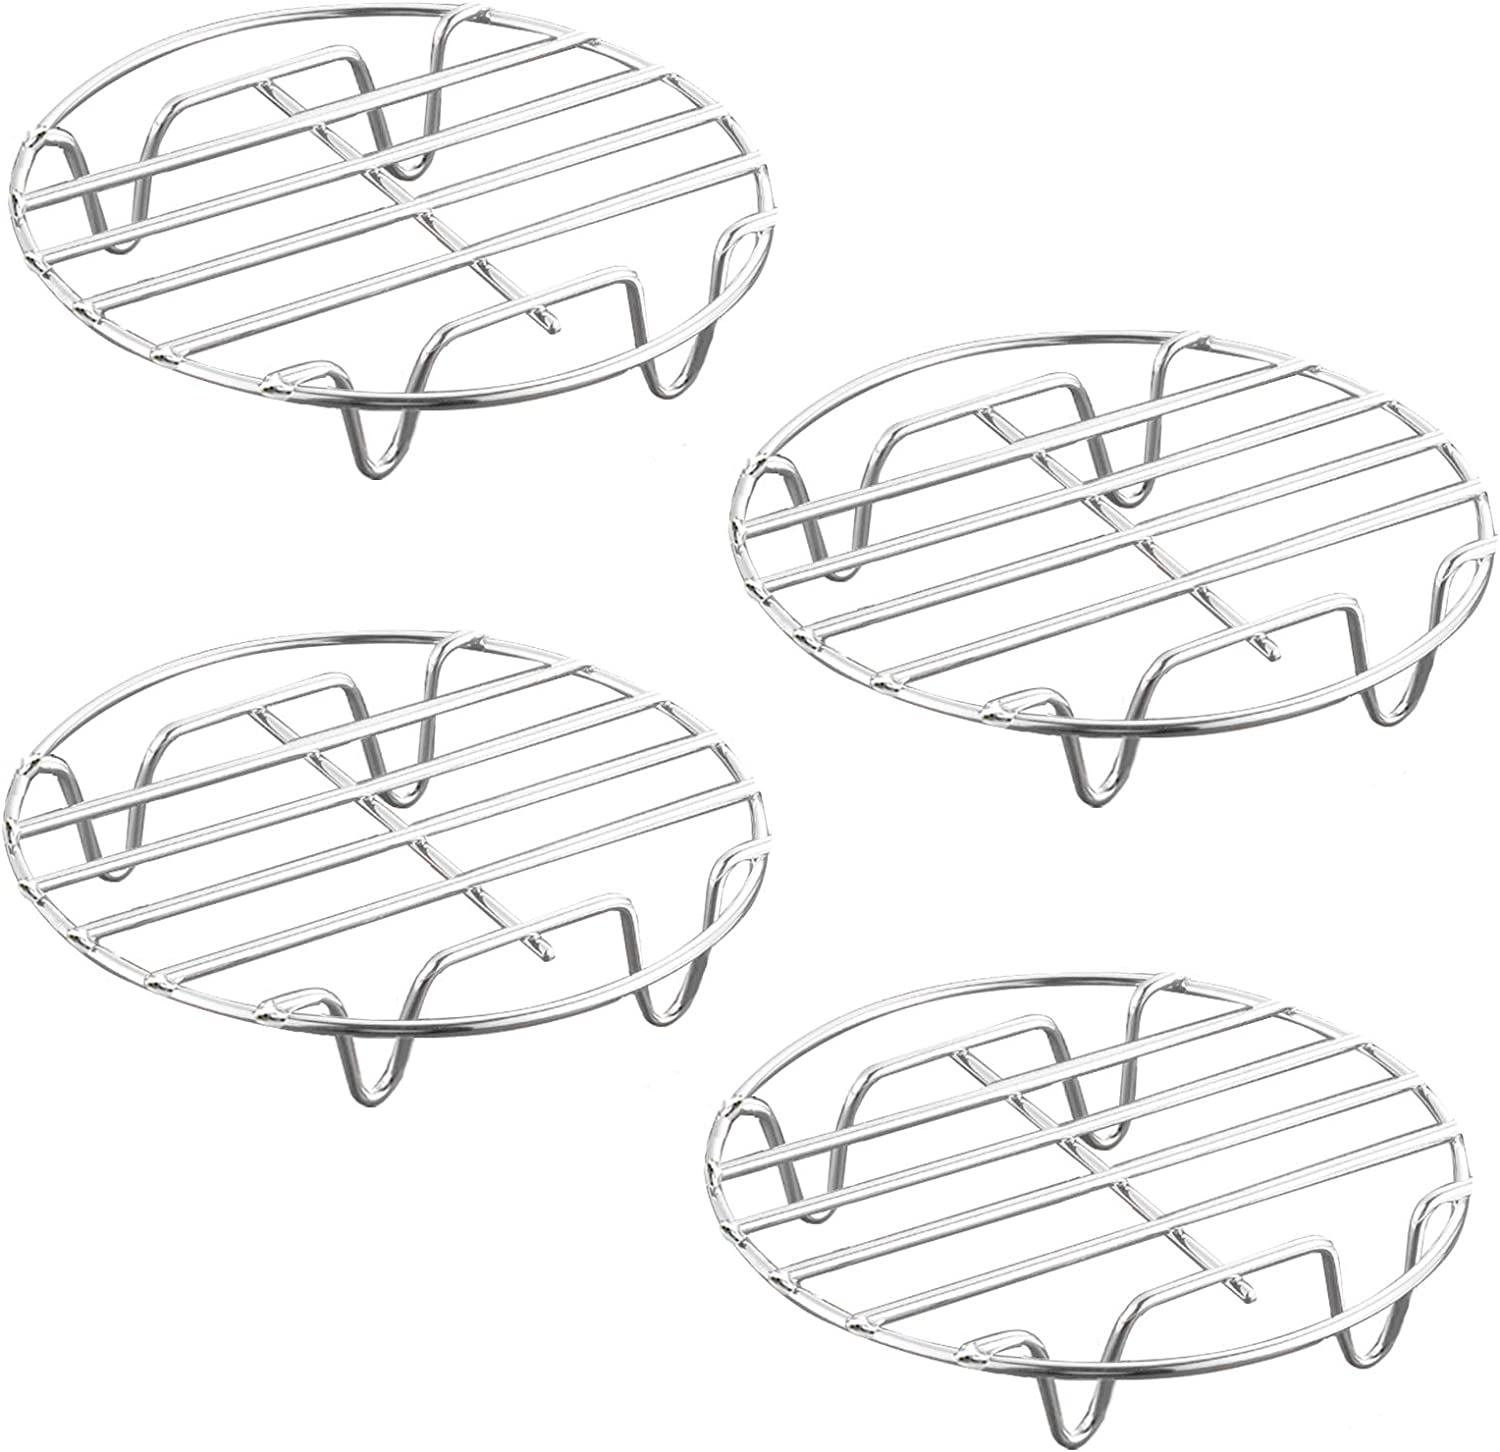 HILELIFE Stainless Steel Cooling Rack - 4 Pcs 7 in Round Cooking Rack Steamer Rack Multipurpose Drying Baking Rack for Stock Pot, Pressure Cooker, Steamer, Canning, Pan and Oven: Kitchen & Dining